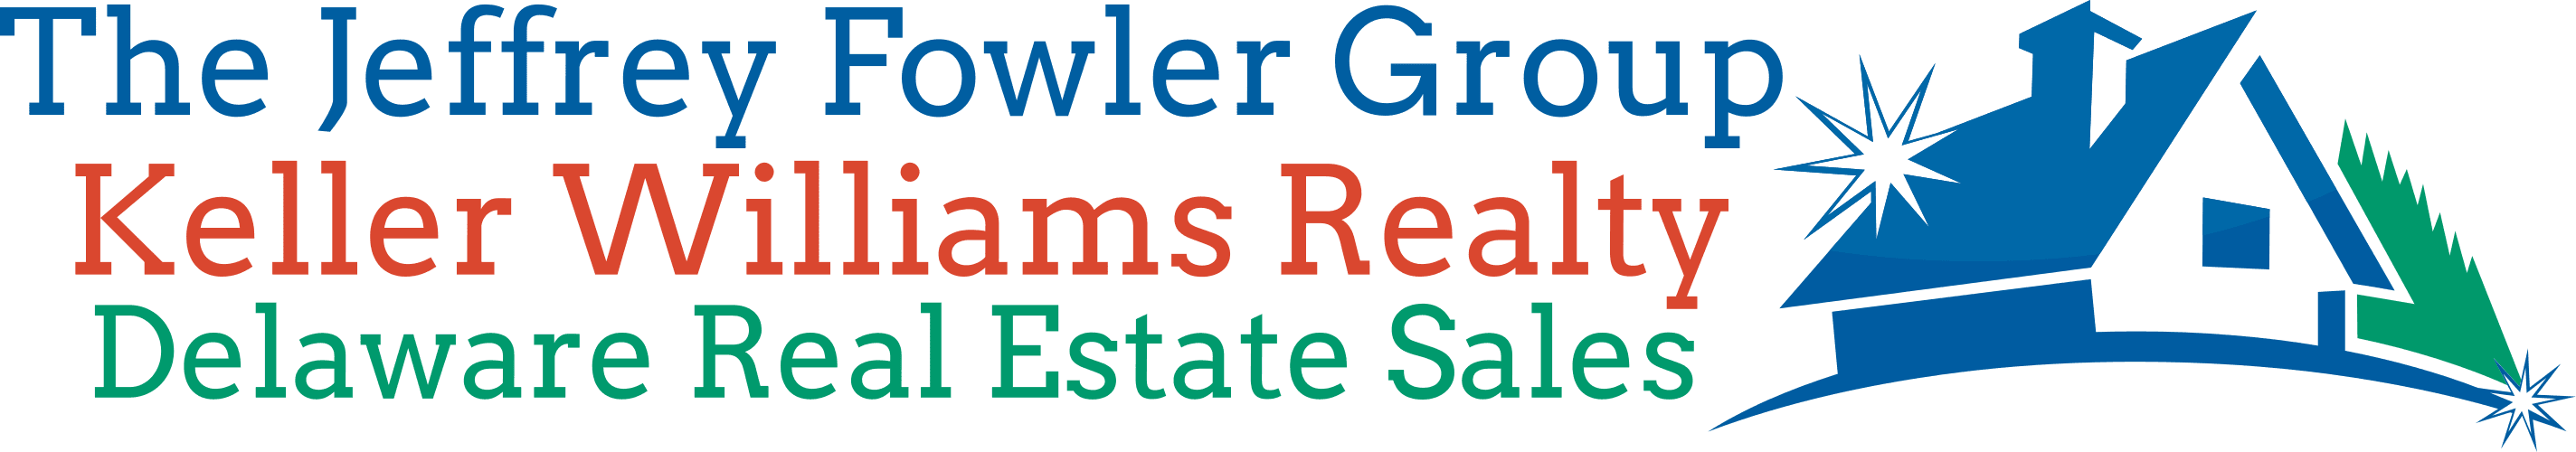 Delaware Real Estate - Homes Condos Townhomes Land Farms Commercial Sales Fowler Group kw Realty